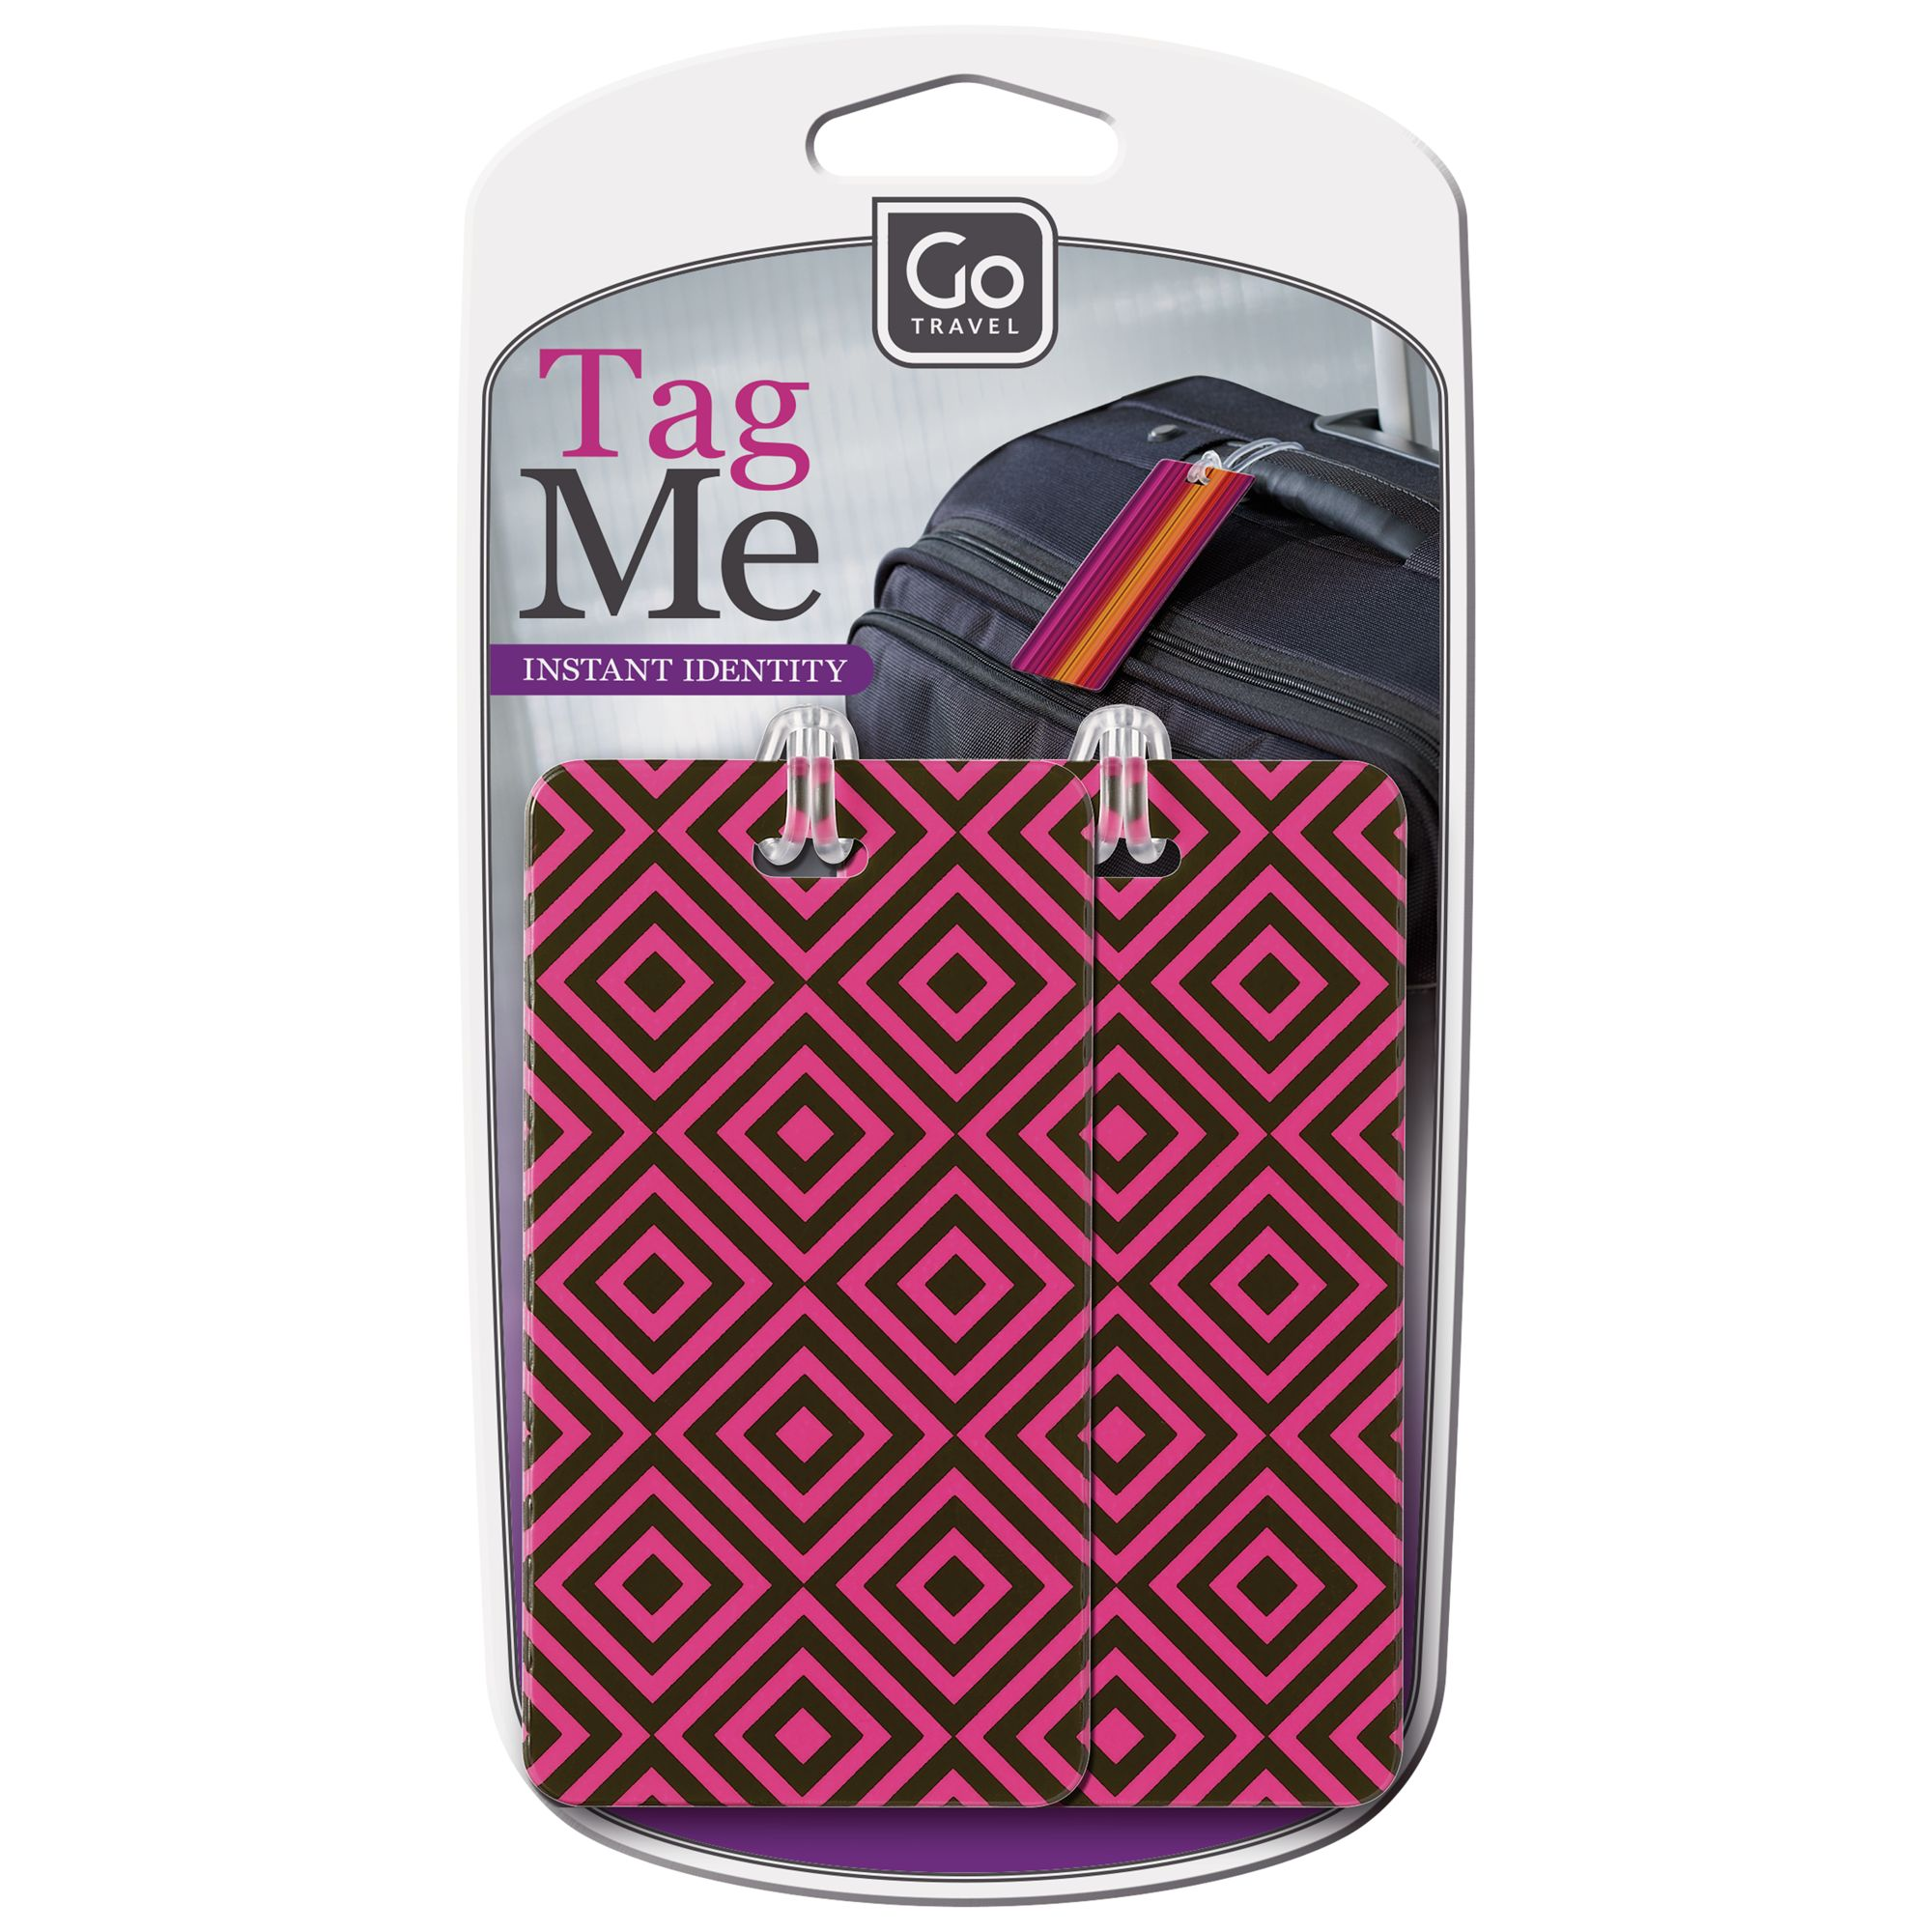 Go Travel Go Travel 906 Tag Me Patterned Luggage Tag, Multi